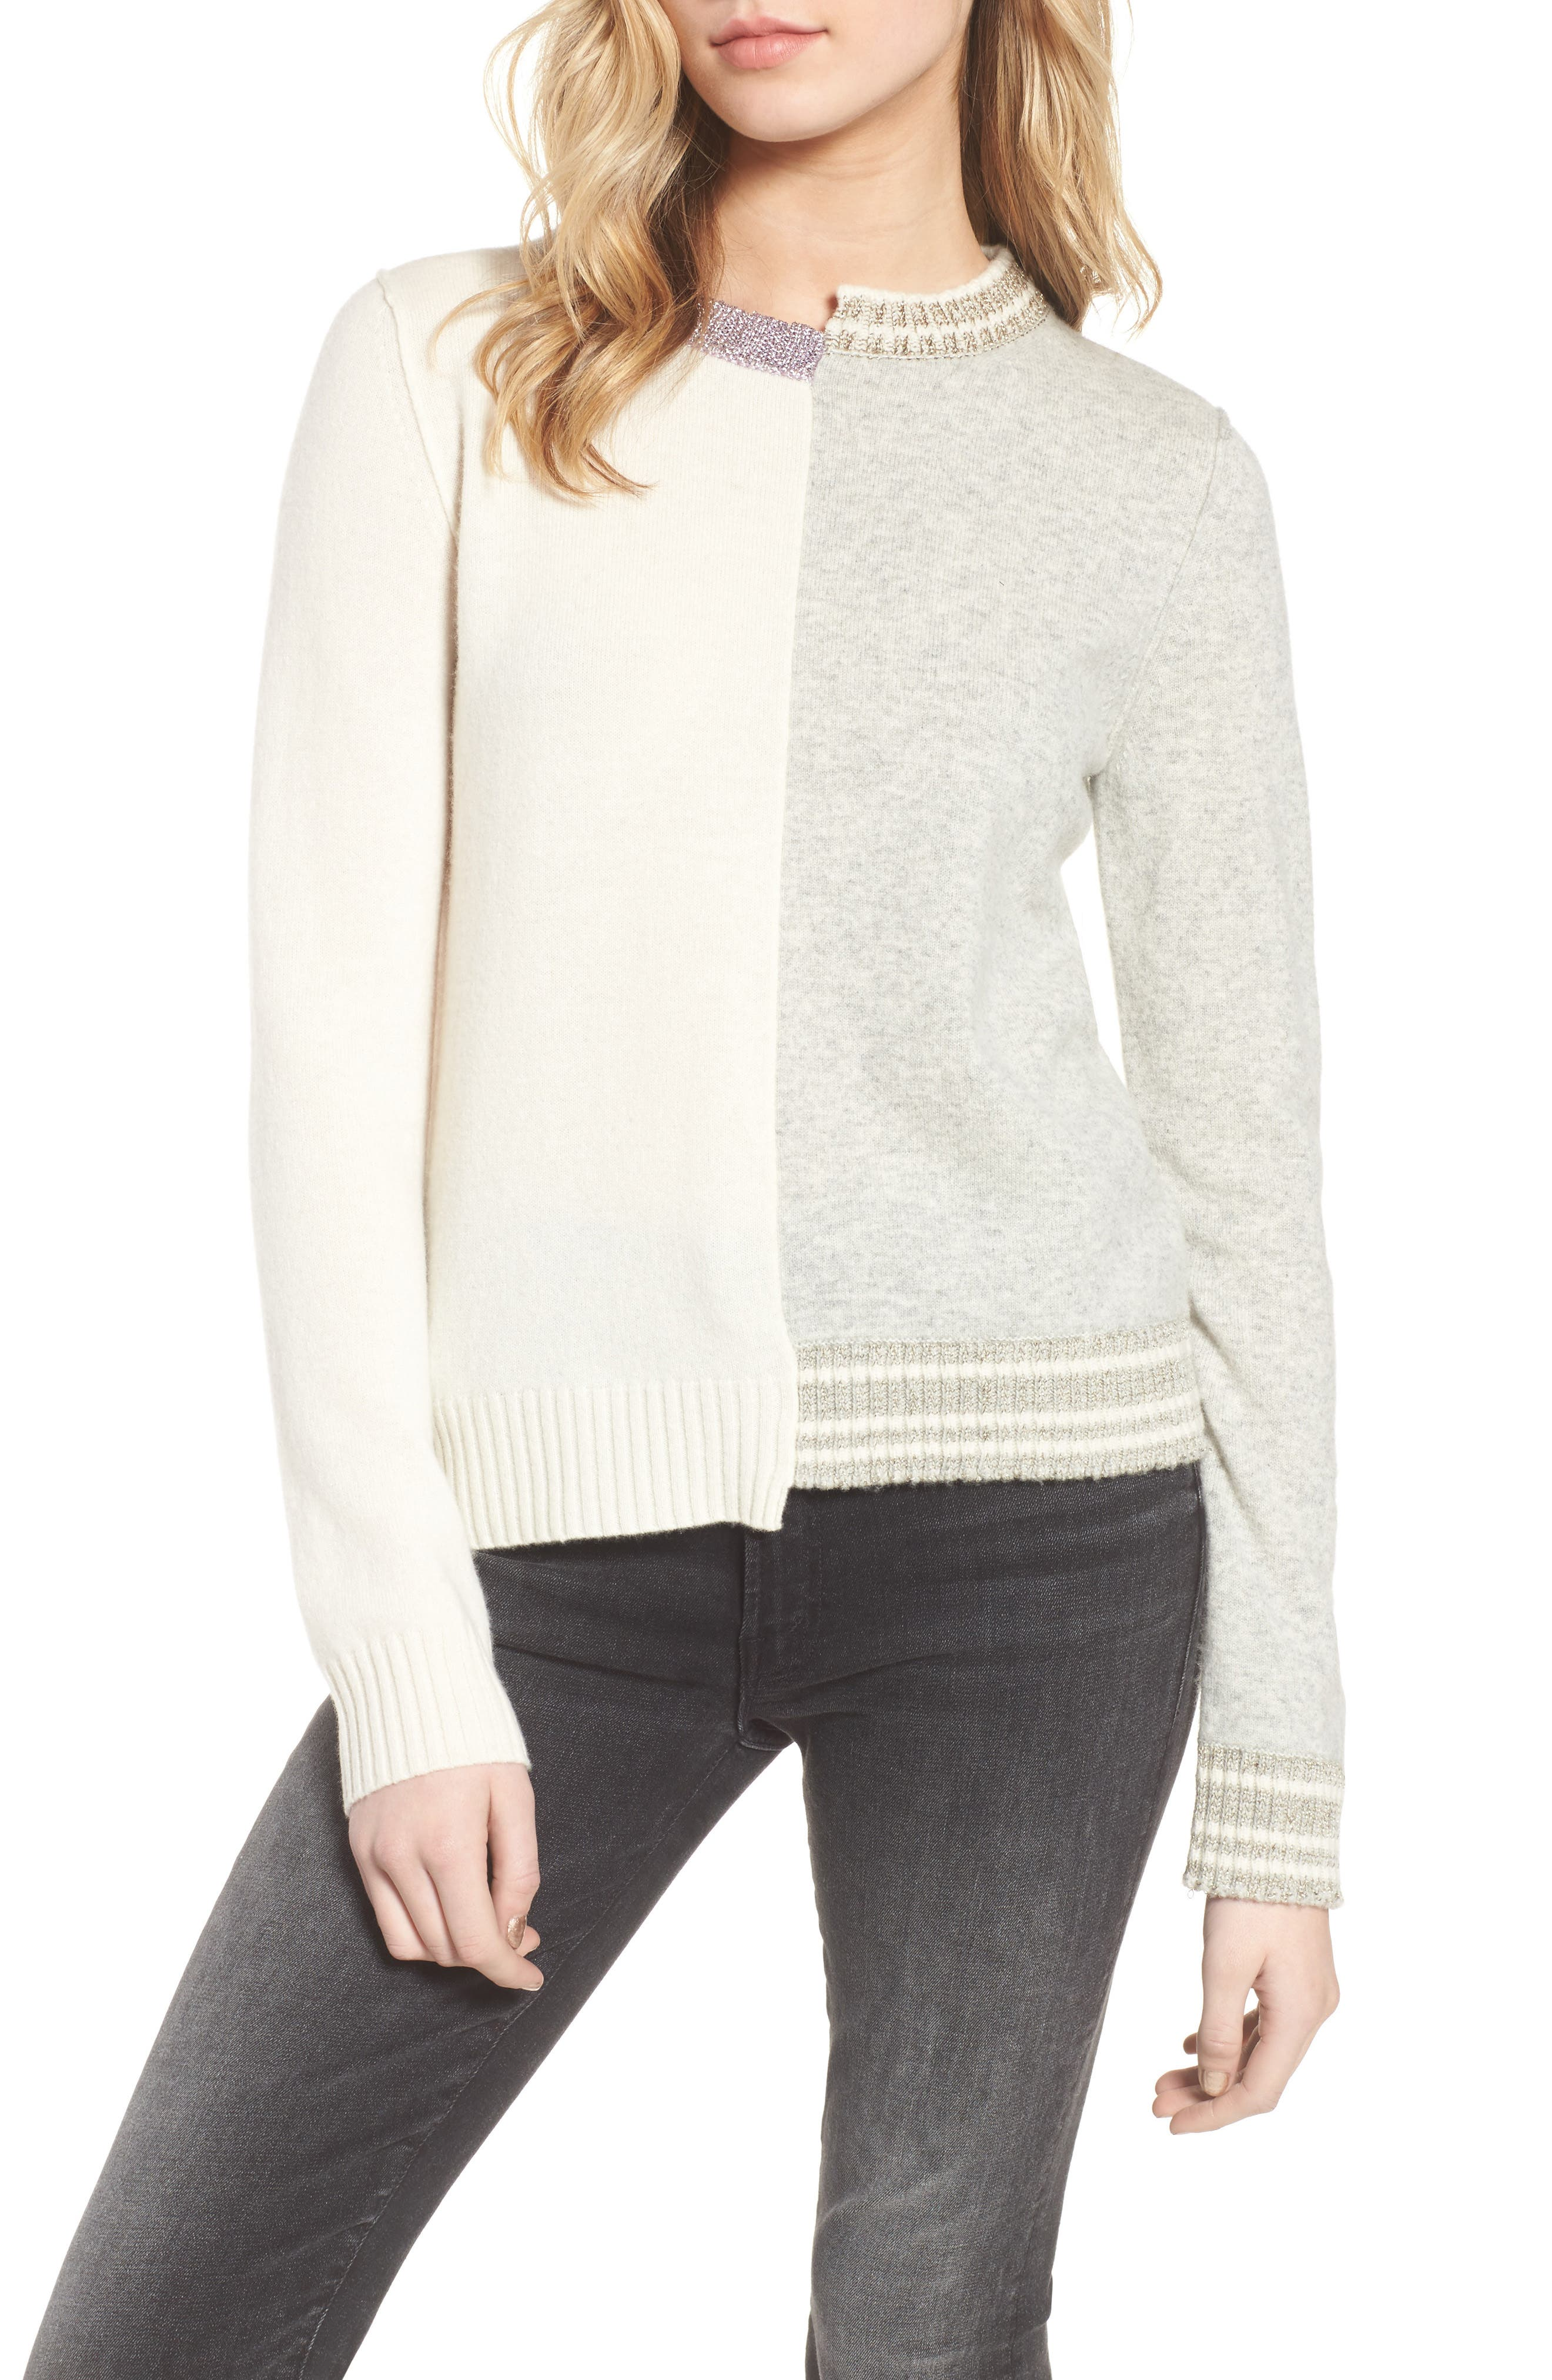 Zadig & Voltaire Source Two-Tone Wool & Cashmere Sweater